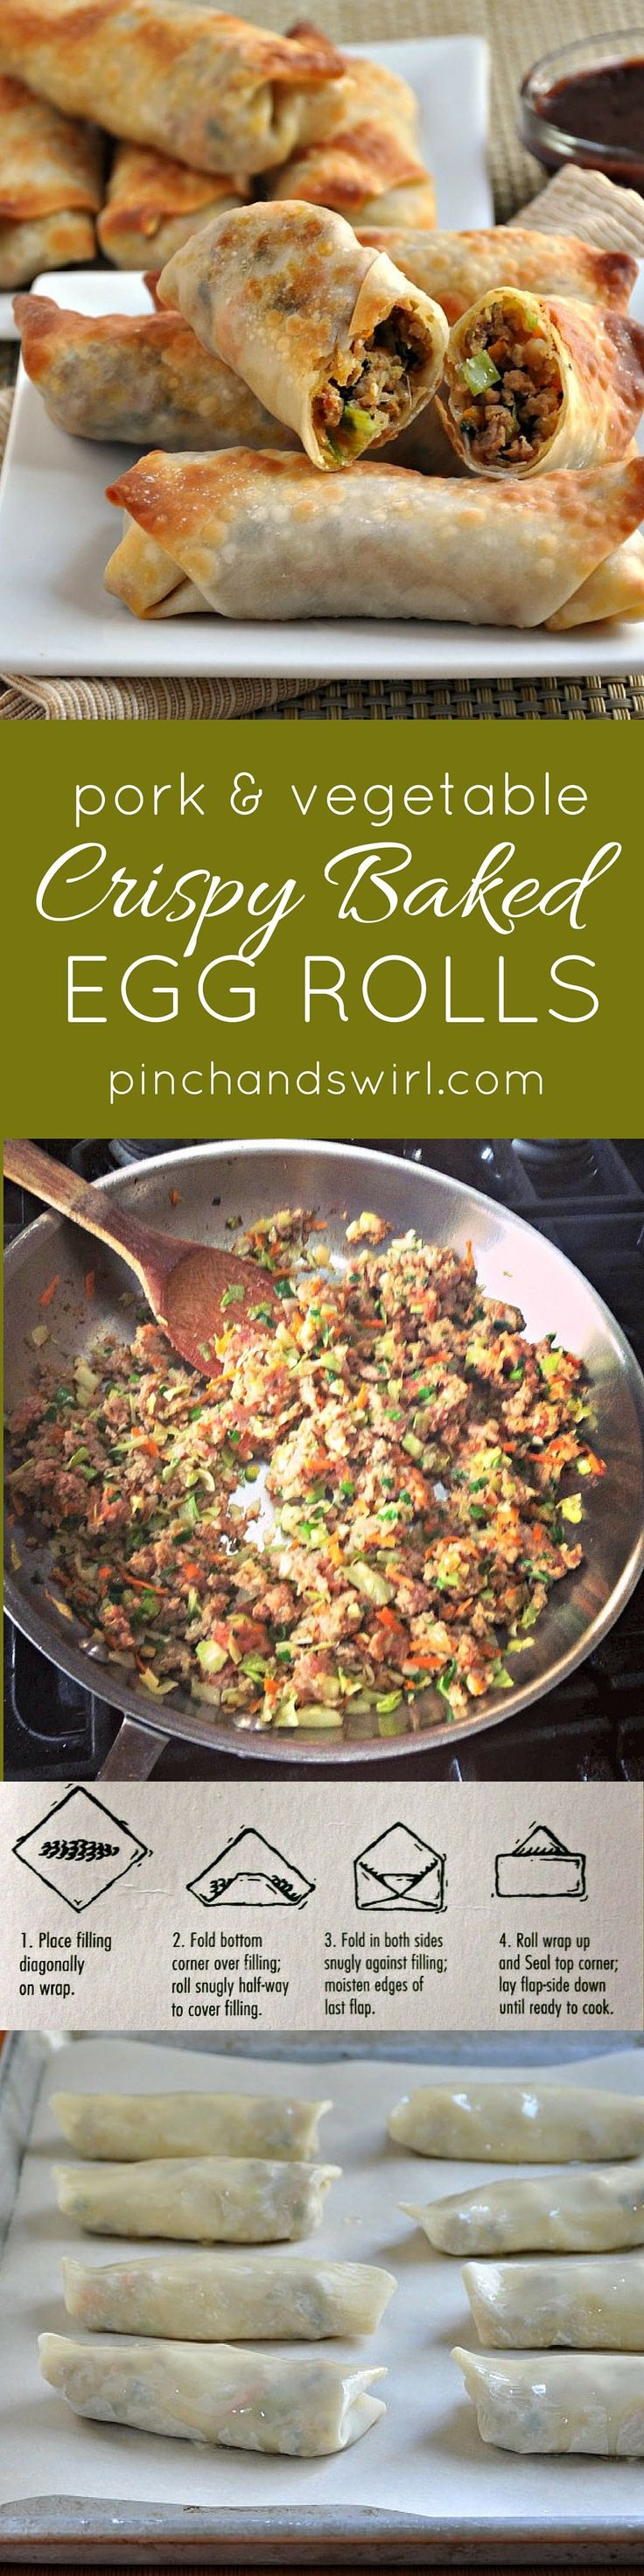 Pork and Vegetable Crispy Baked Egg Rolls - so easy to make and crispy without frying! #healthyrecipes #pork #asianfood